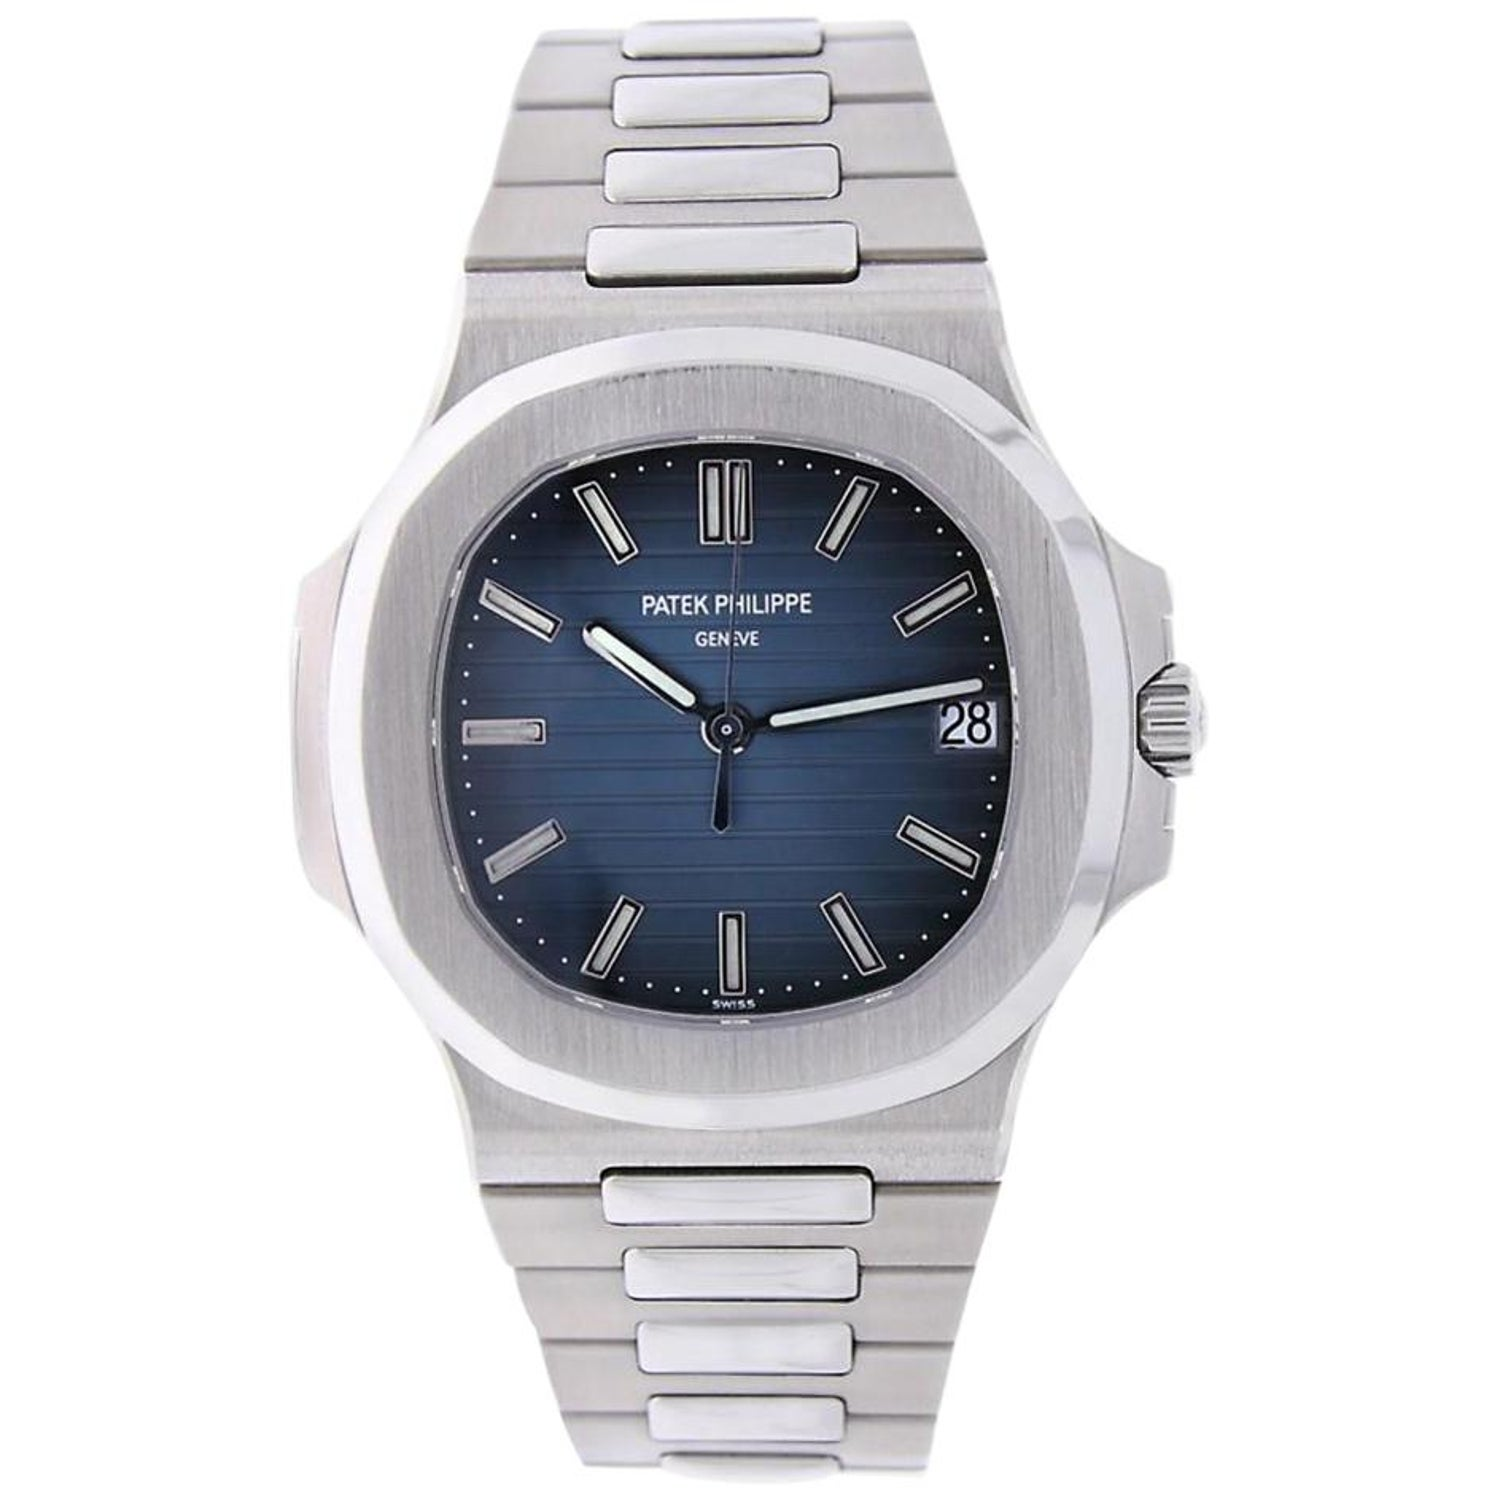 Patek Philippe Nautilus Stainless Steel Blue Dial Watch 5711 1a 010